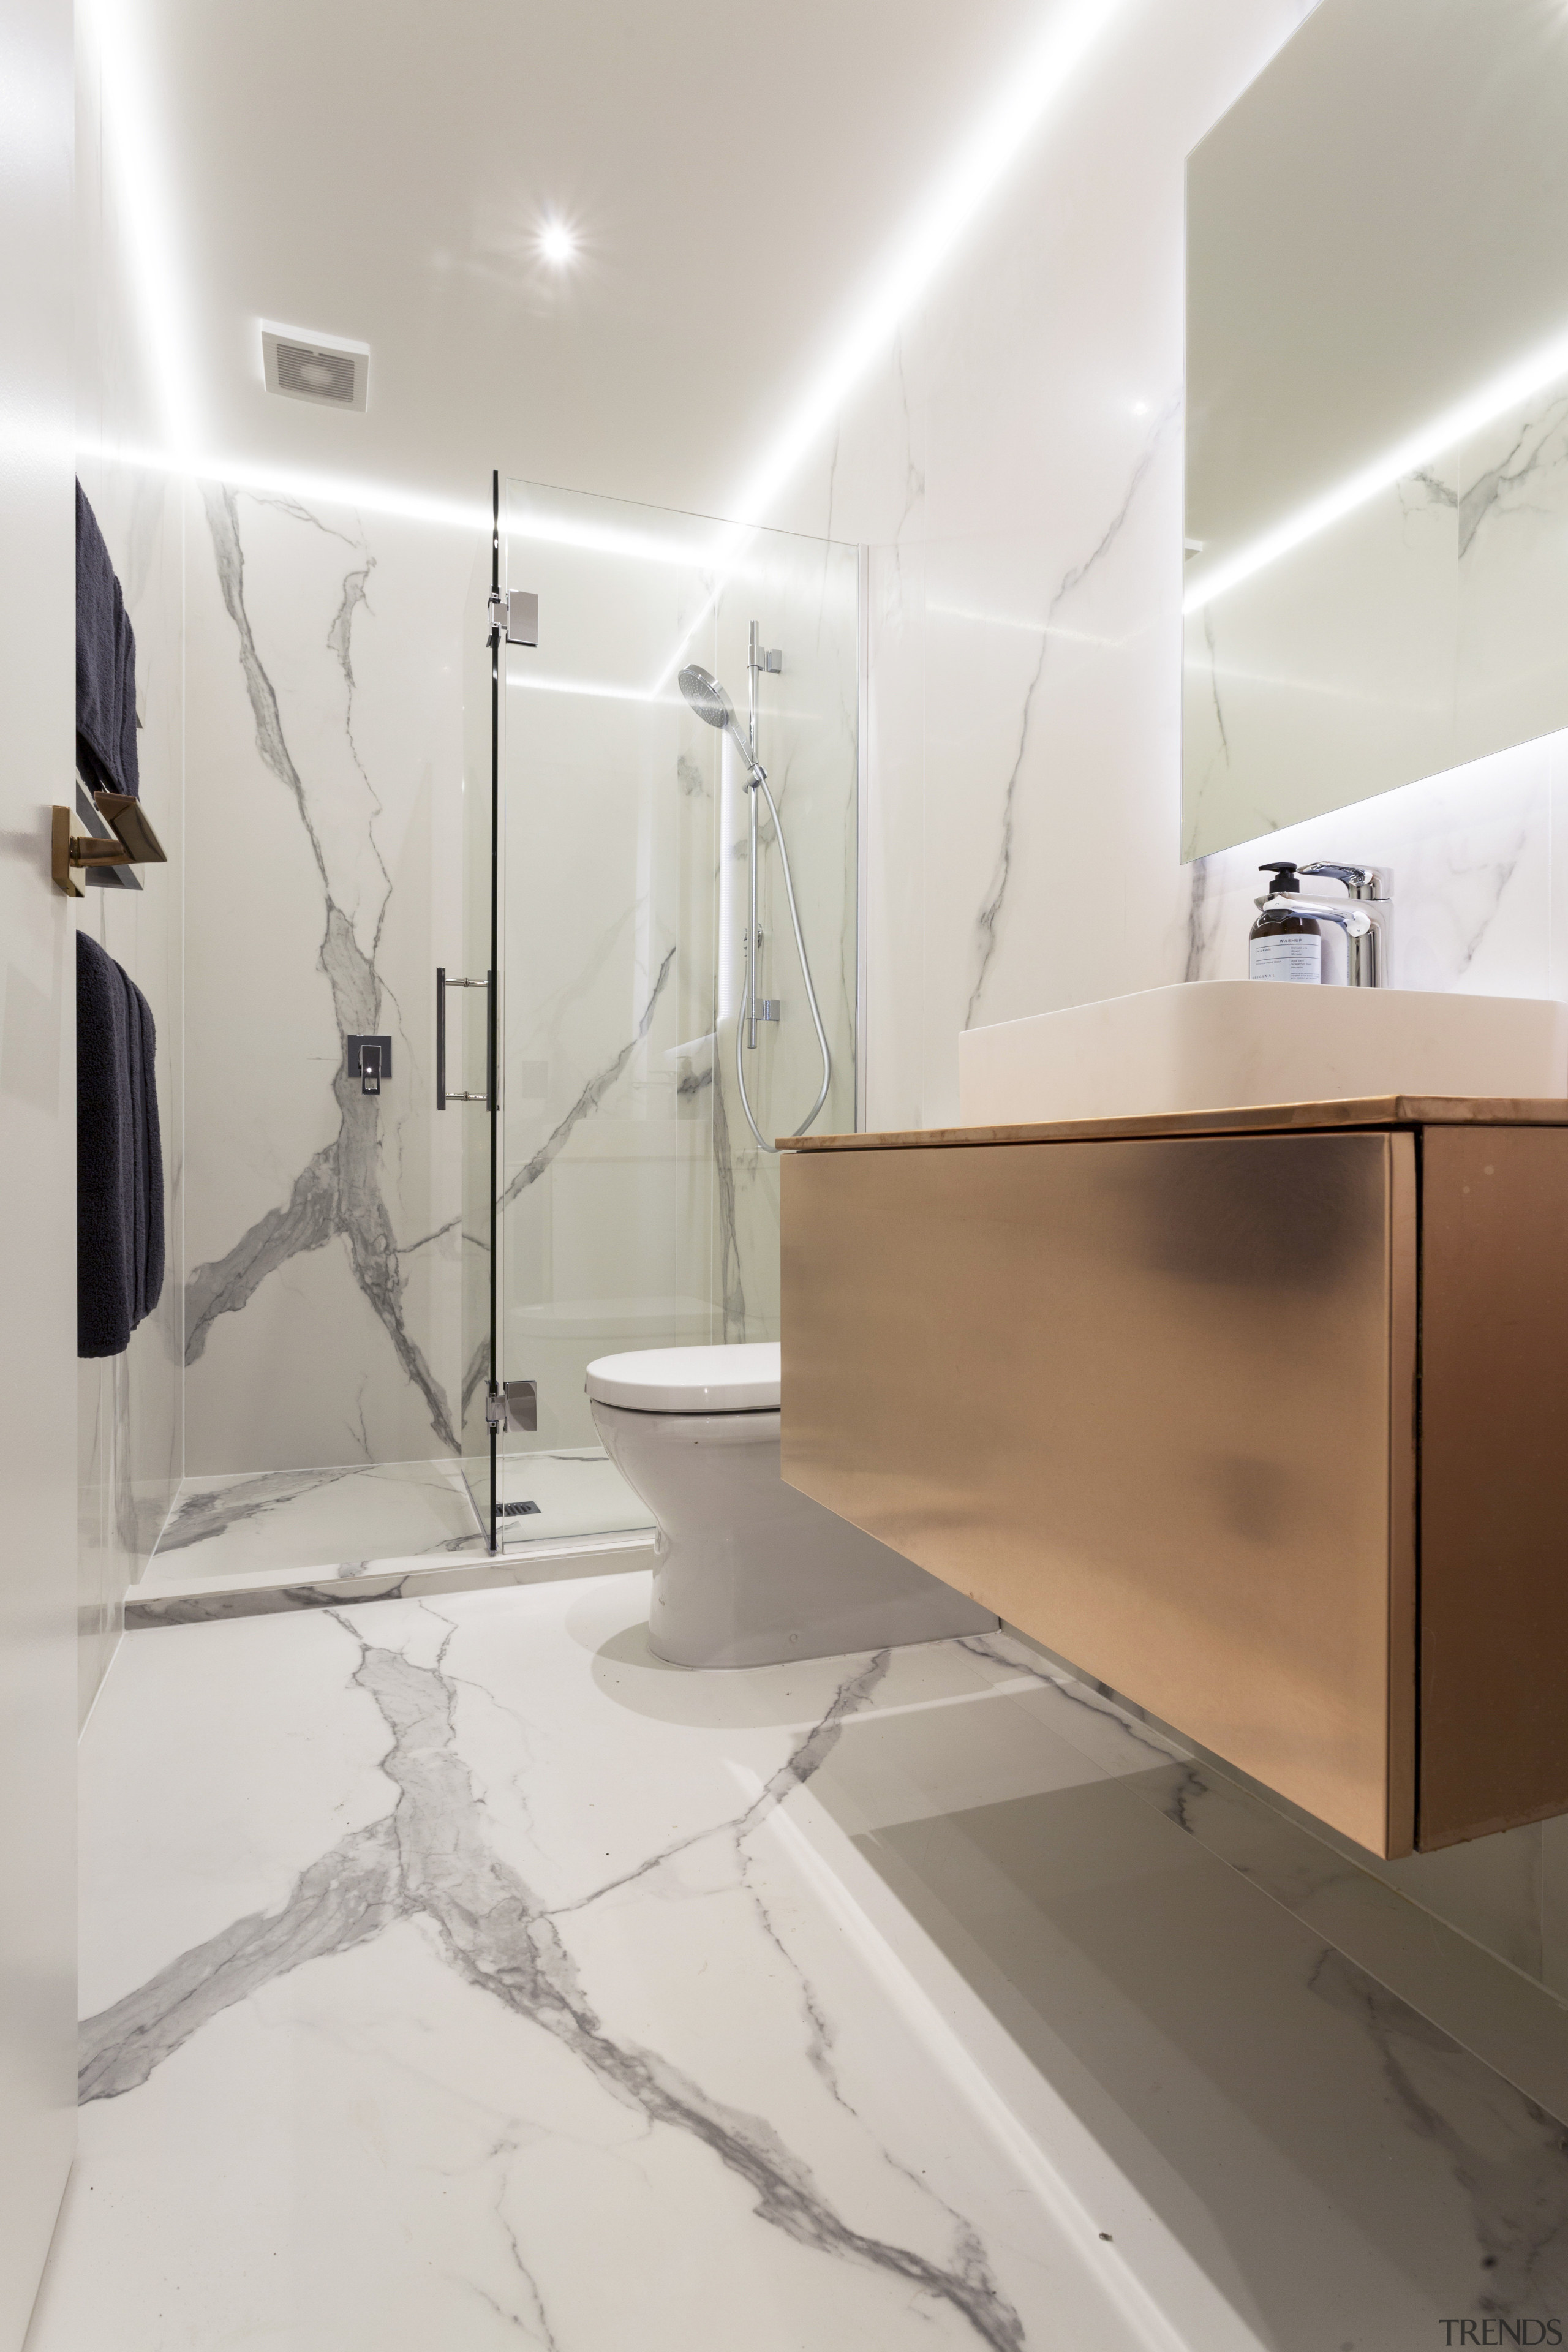 In all three bathrooms in this project, the bathroom, floor, flooring, interior design, plumbing fixture, product design, room, sink, tap, tile, wall, gray